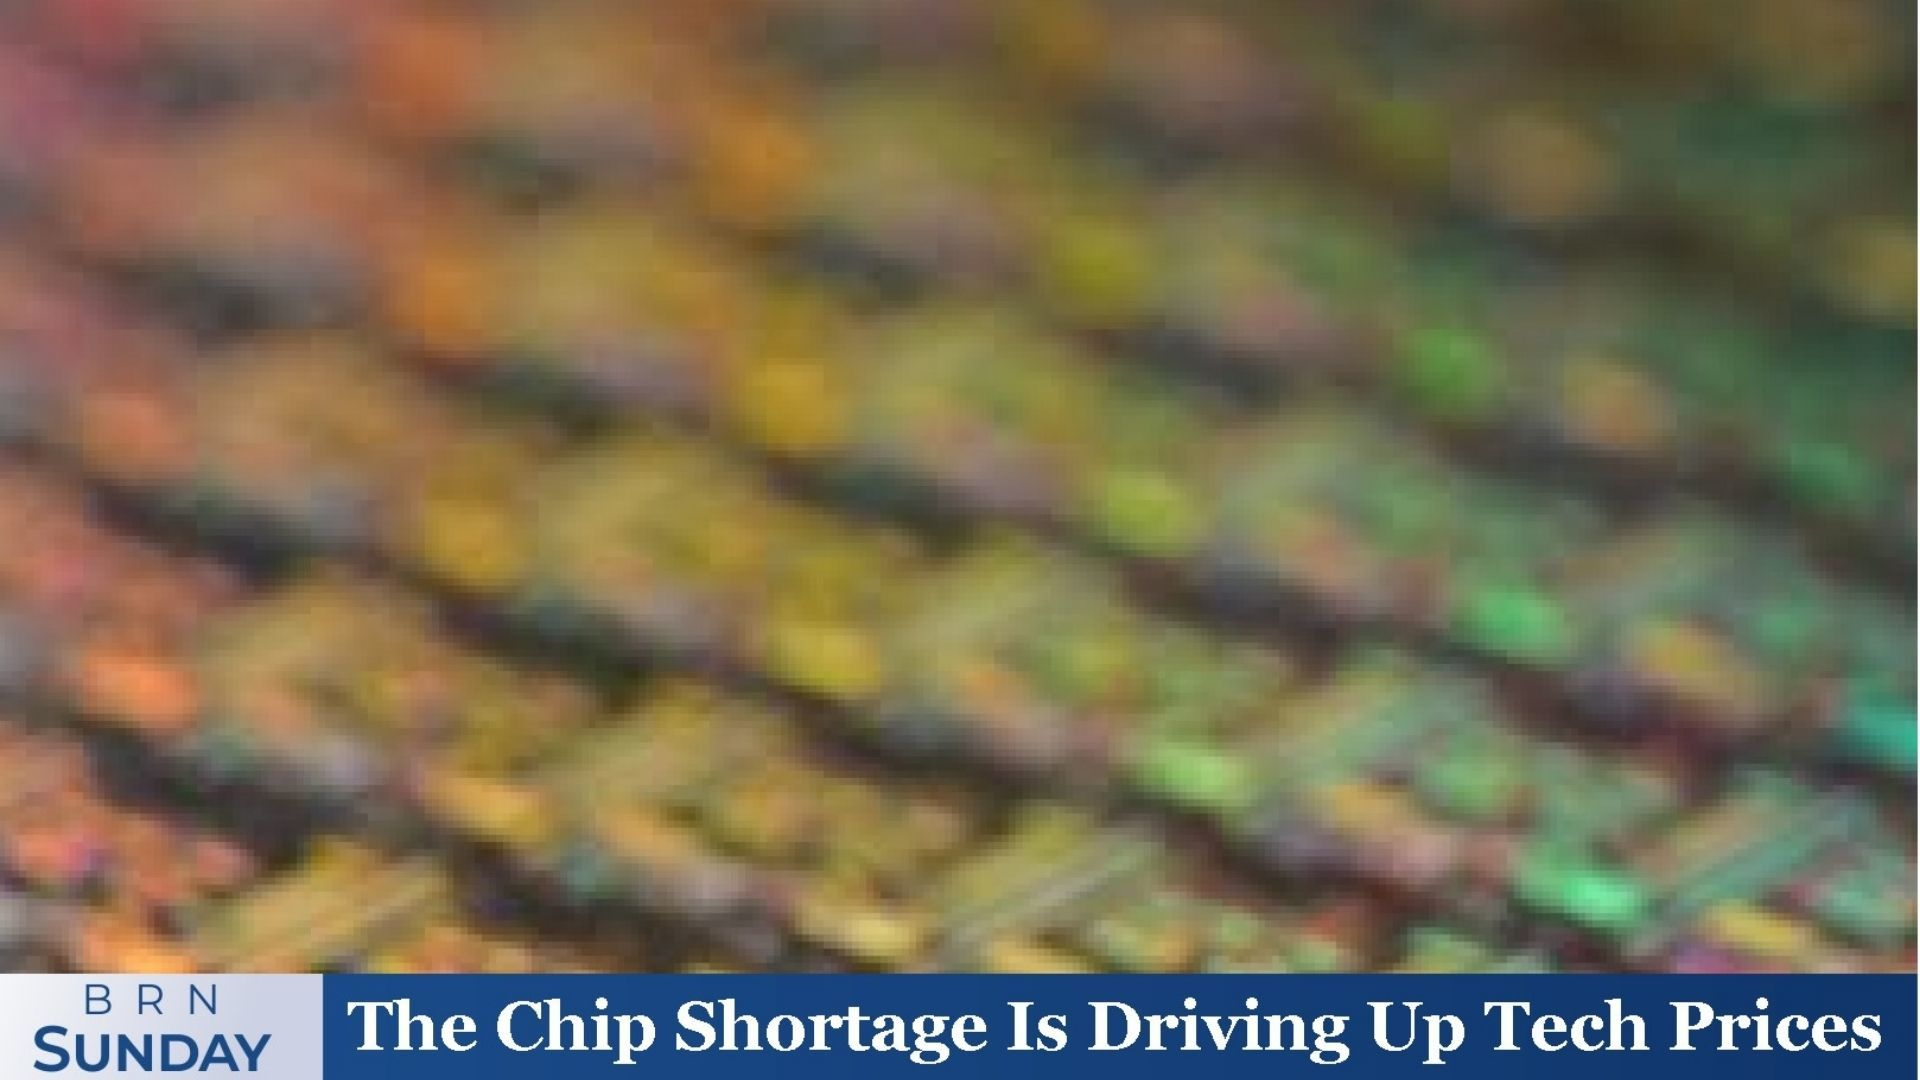 BRN Sunday   The Chip Shortage Is Driving Up Tech Prices